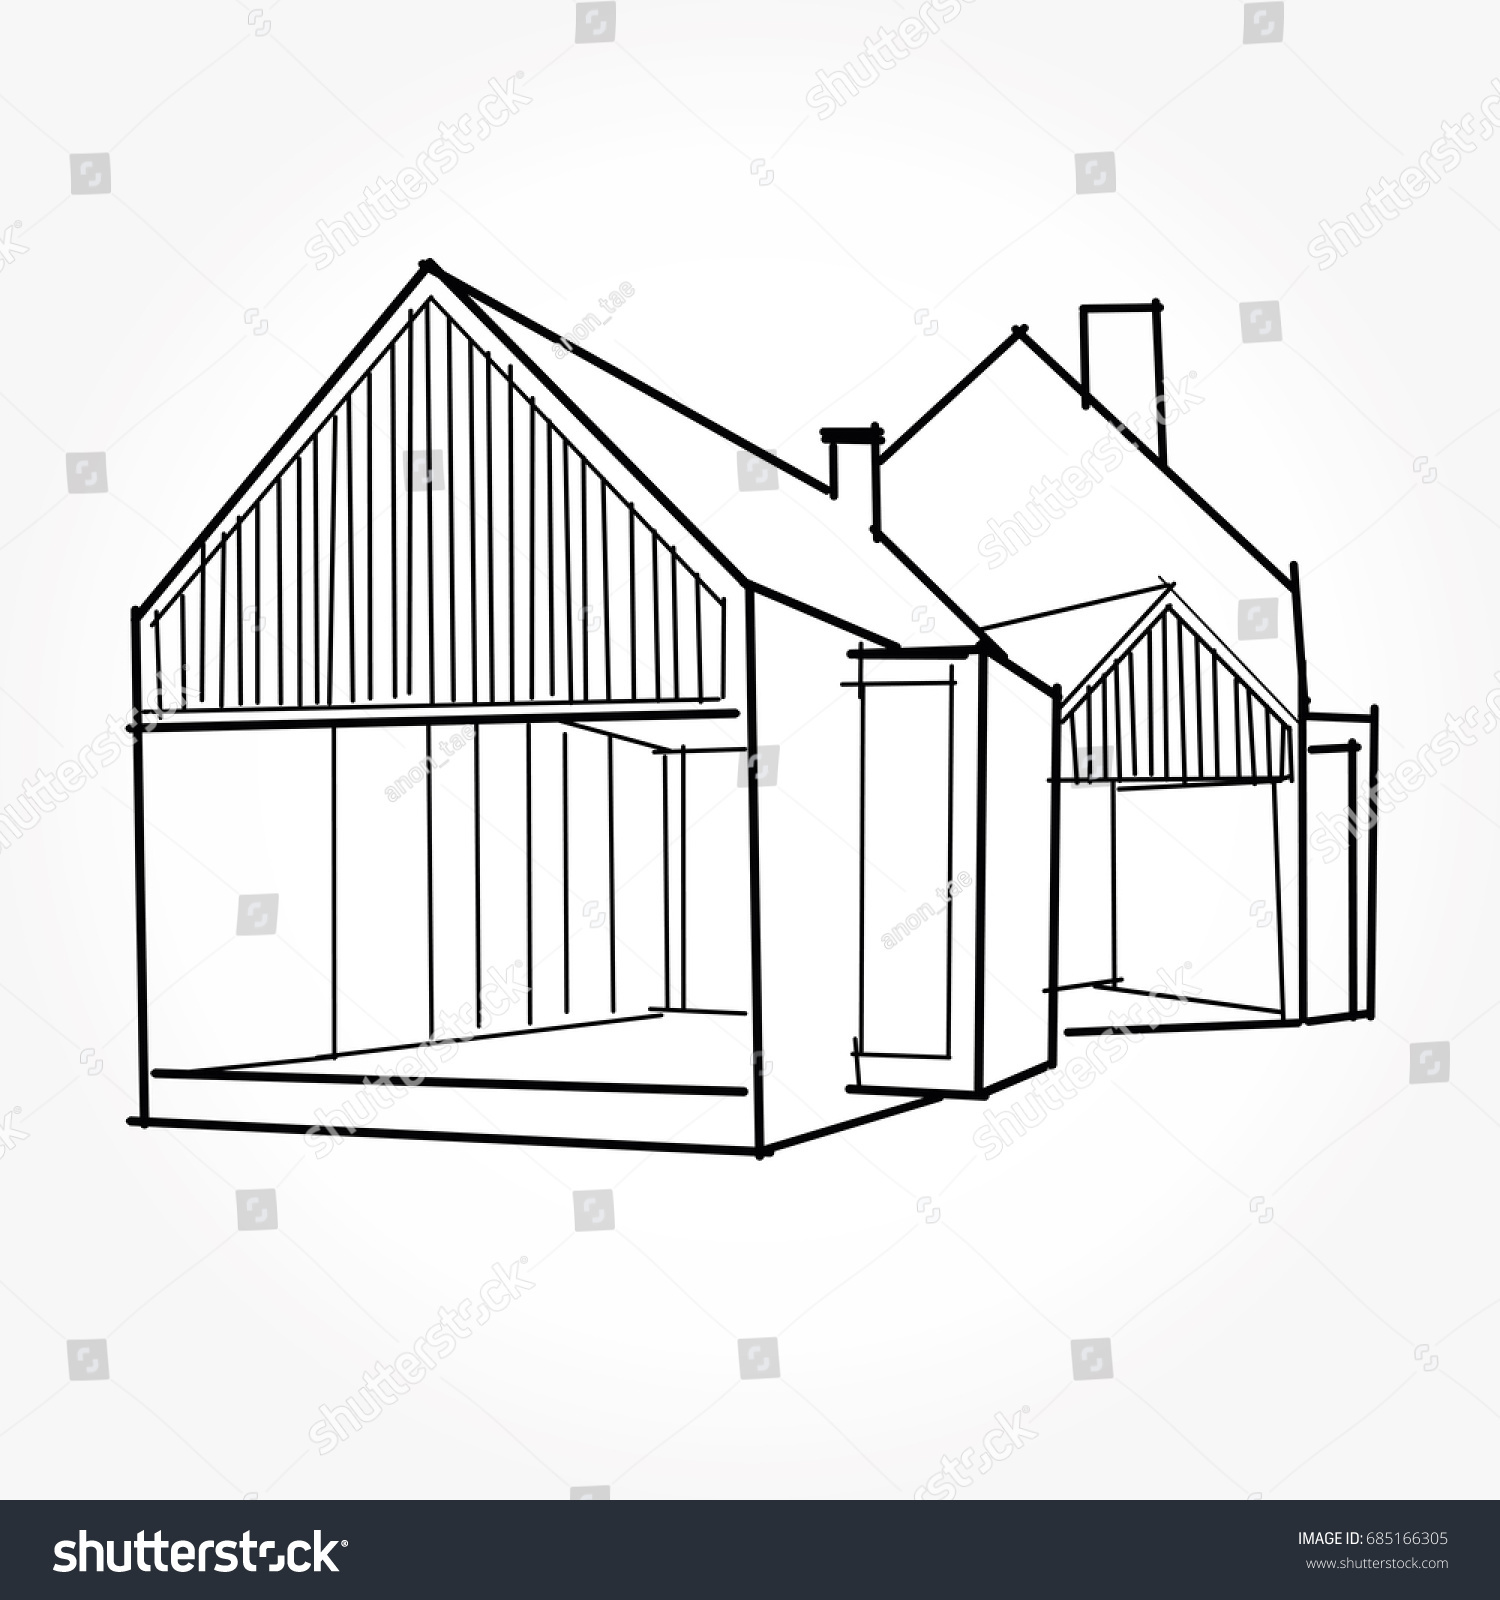 Sketch Modern House Architecture Drawing Free Stock Vector Of